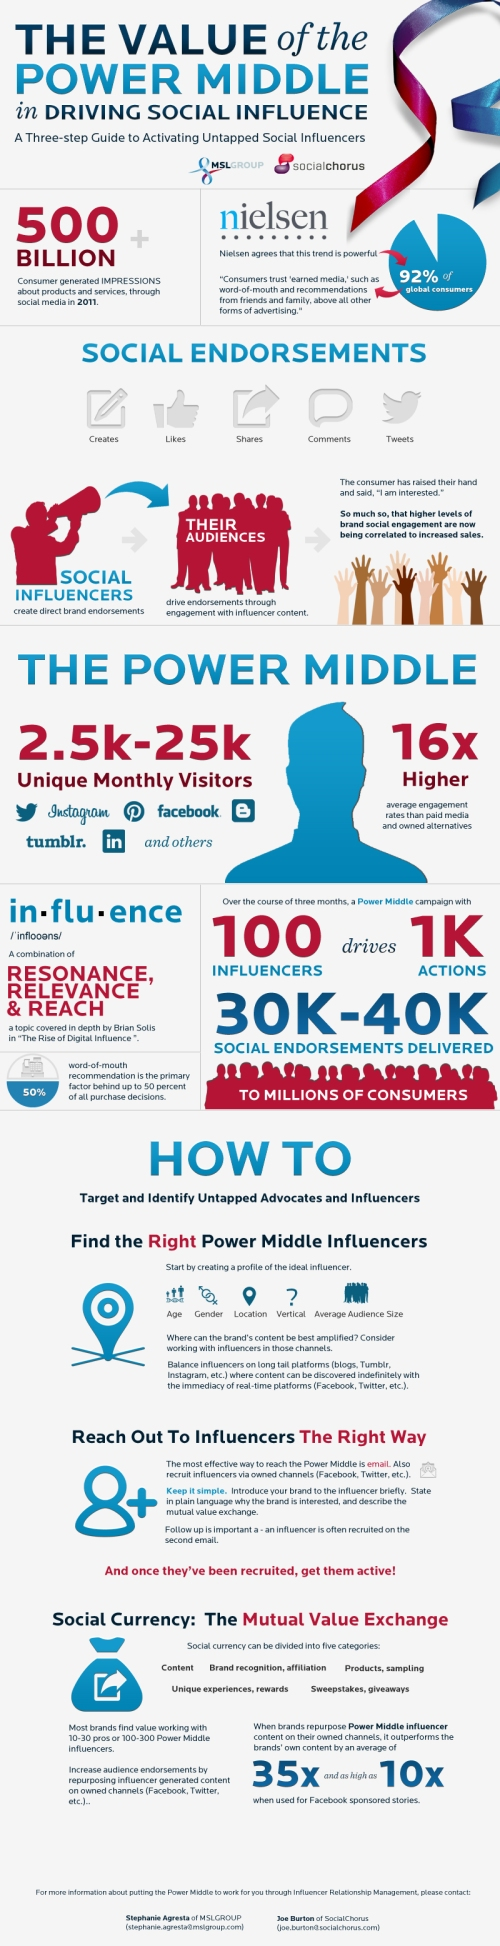 guide-to-finding-the-right-social-influencers_51407e26465d3